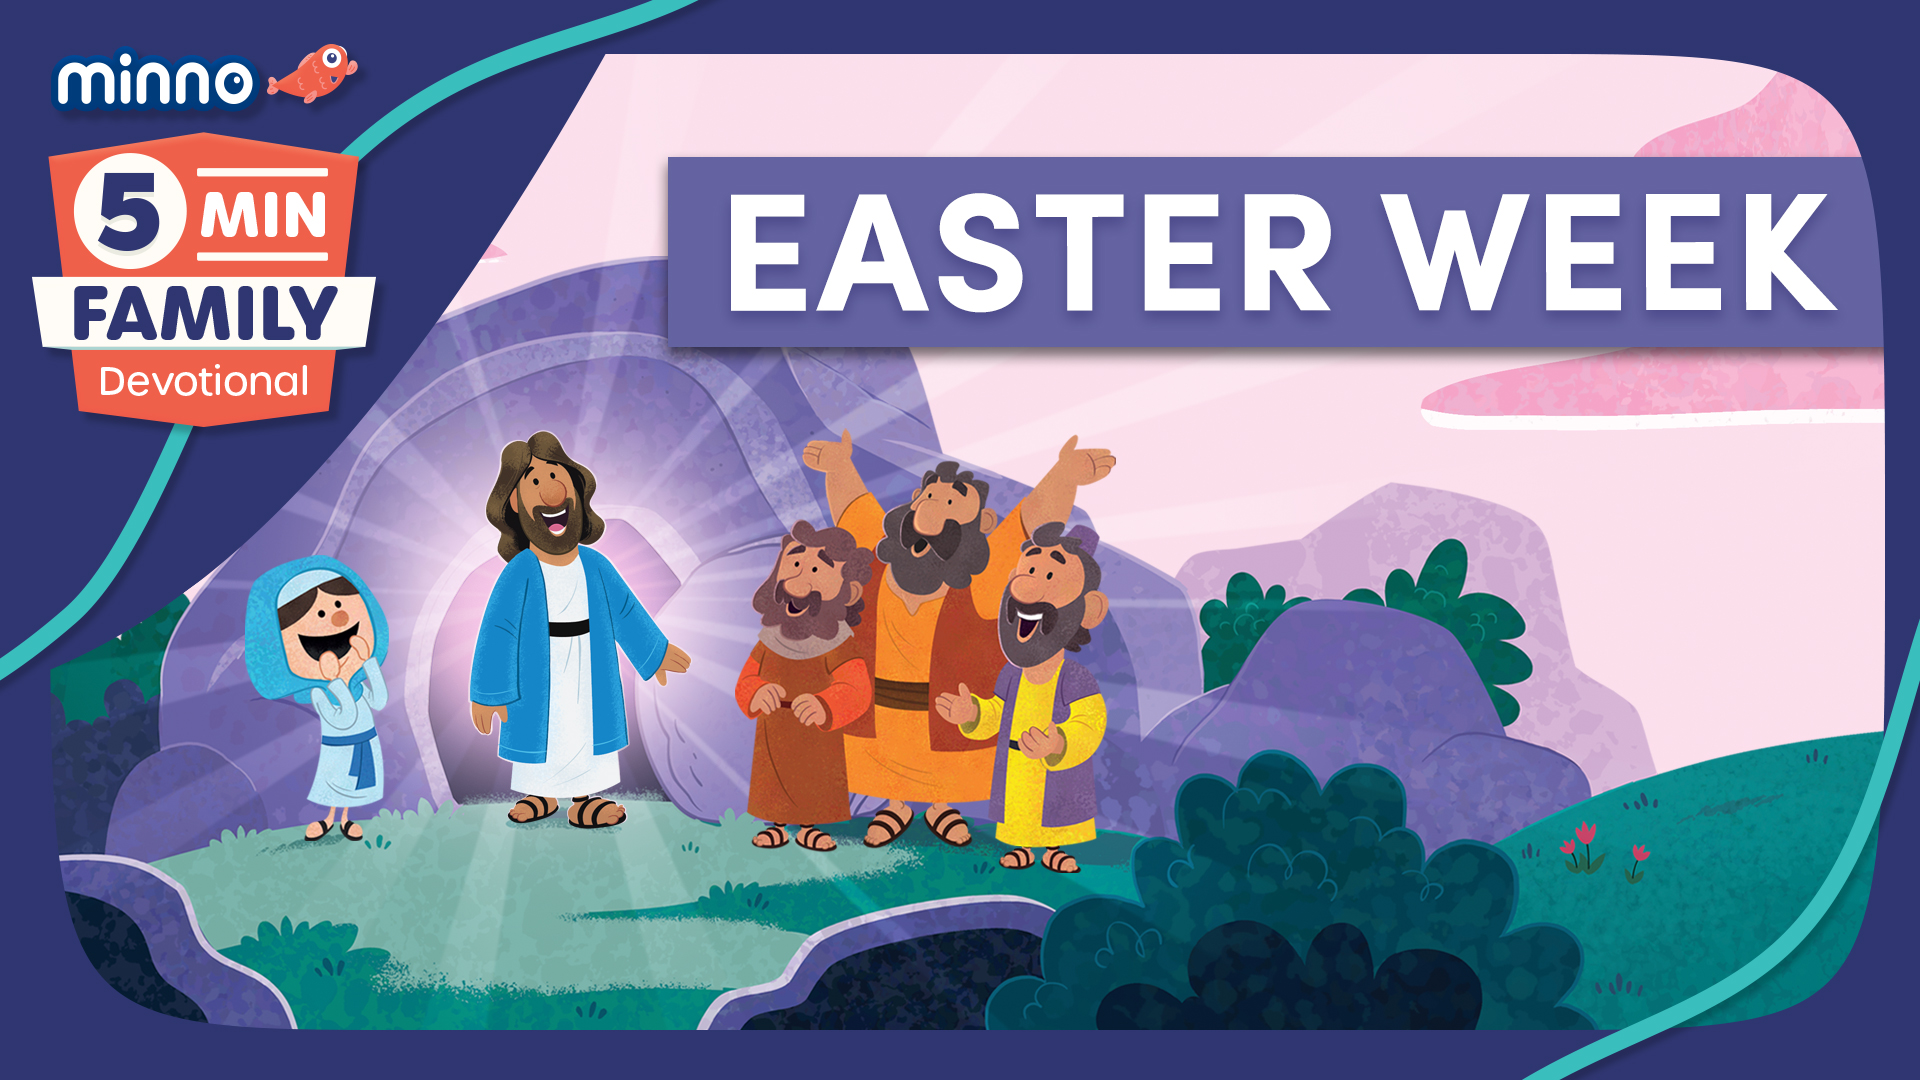 Easter Week: 5 Minute Family Devotional Plan